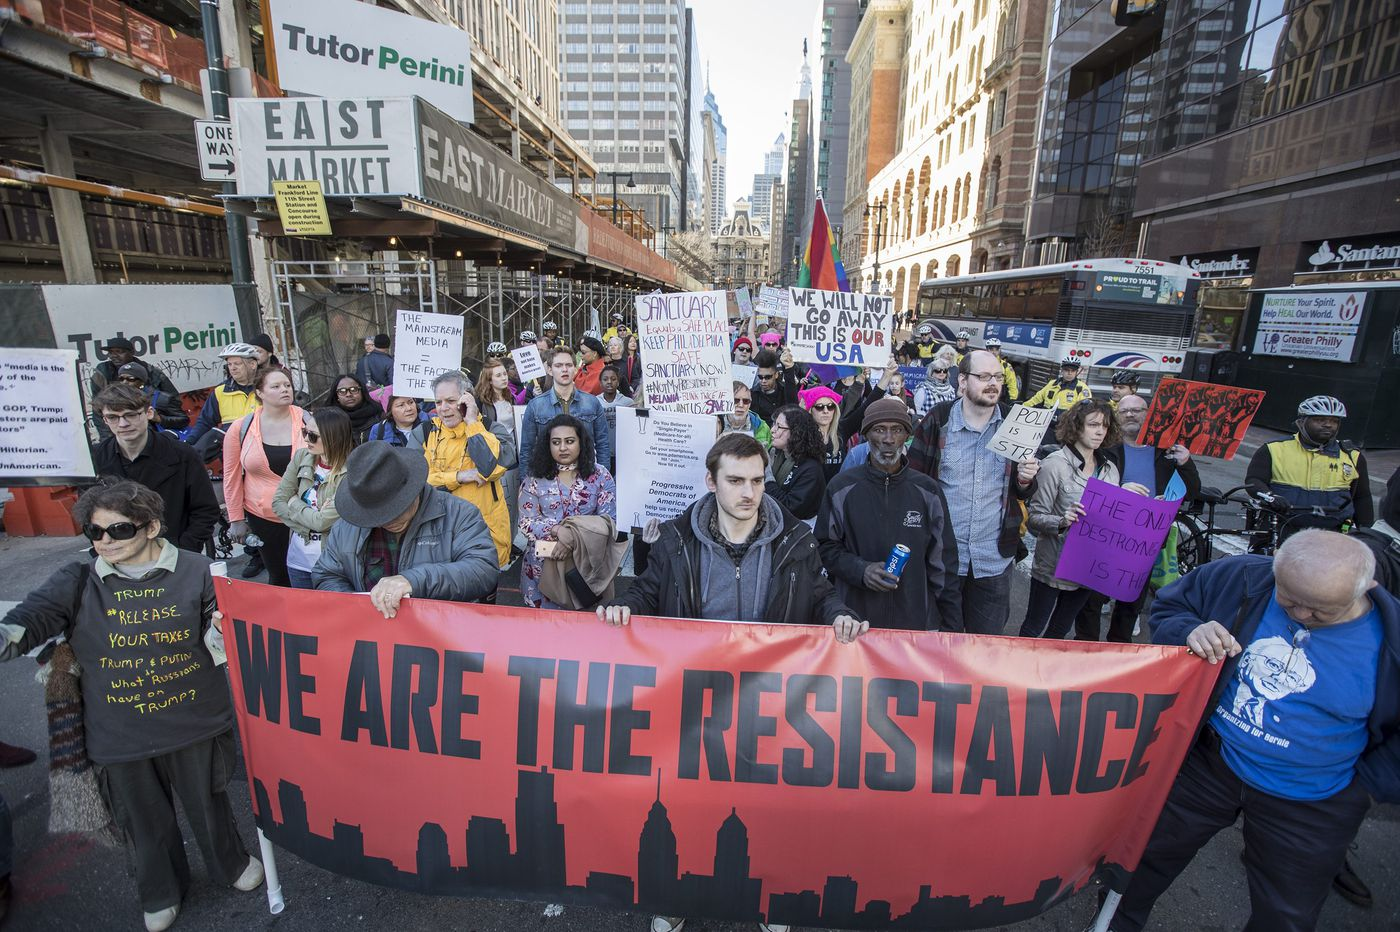 It's time for a general strike, because Trump treason demands a brave response | Will Bunch